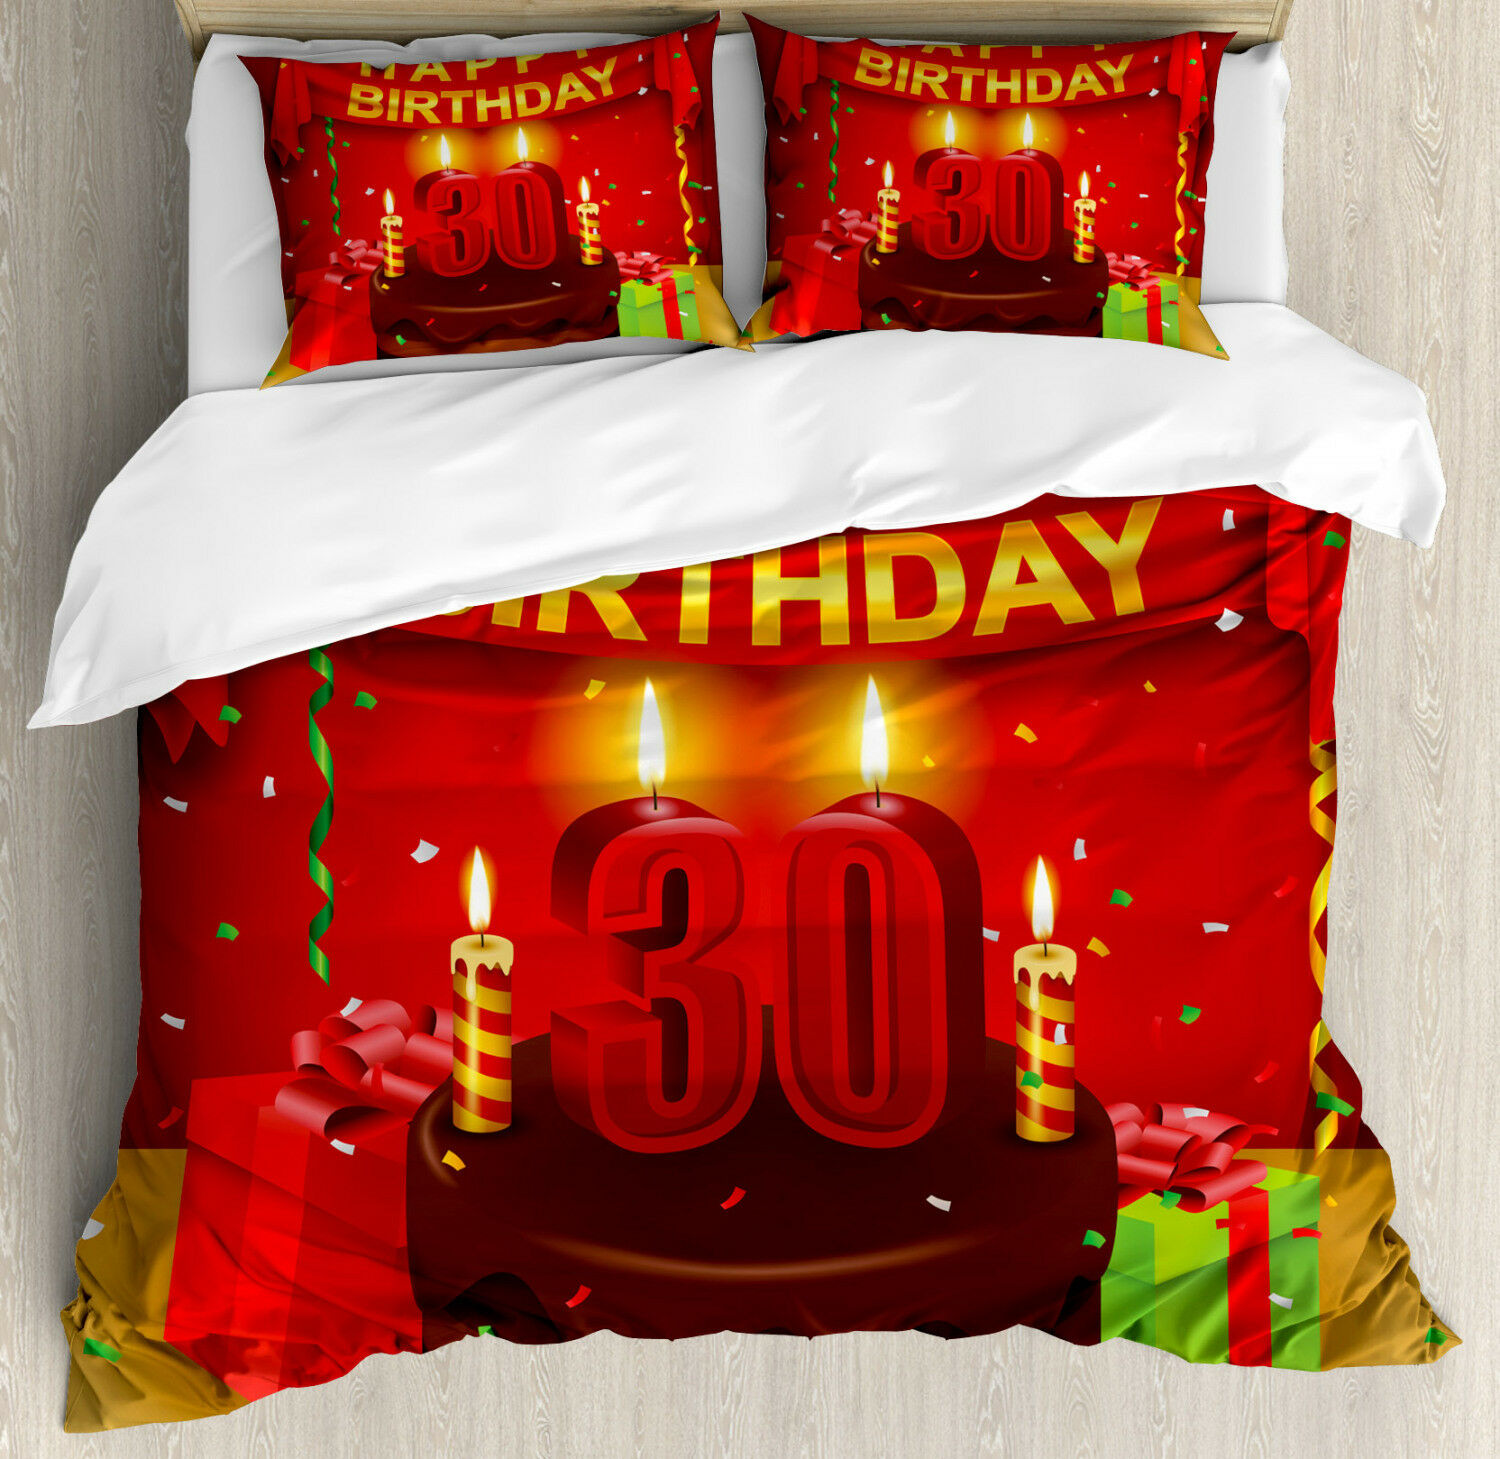 colorful Duvet Cover Set with Pillow Shams Cake and Presents Print